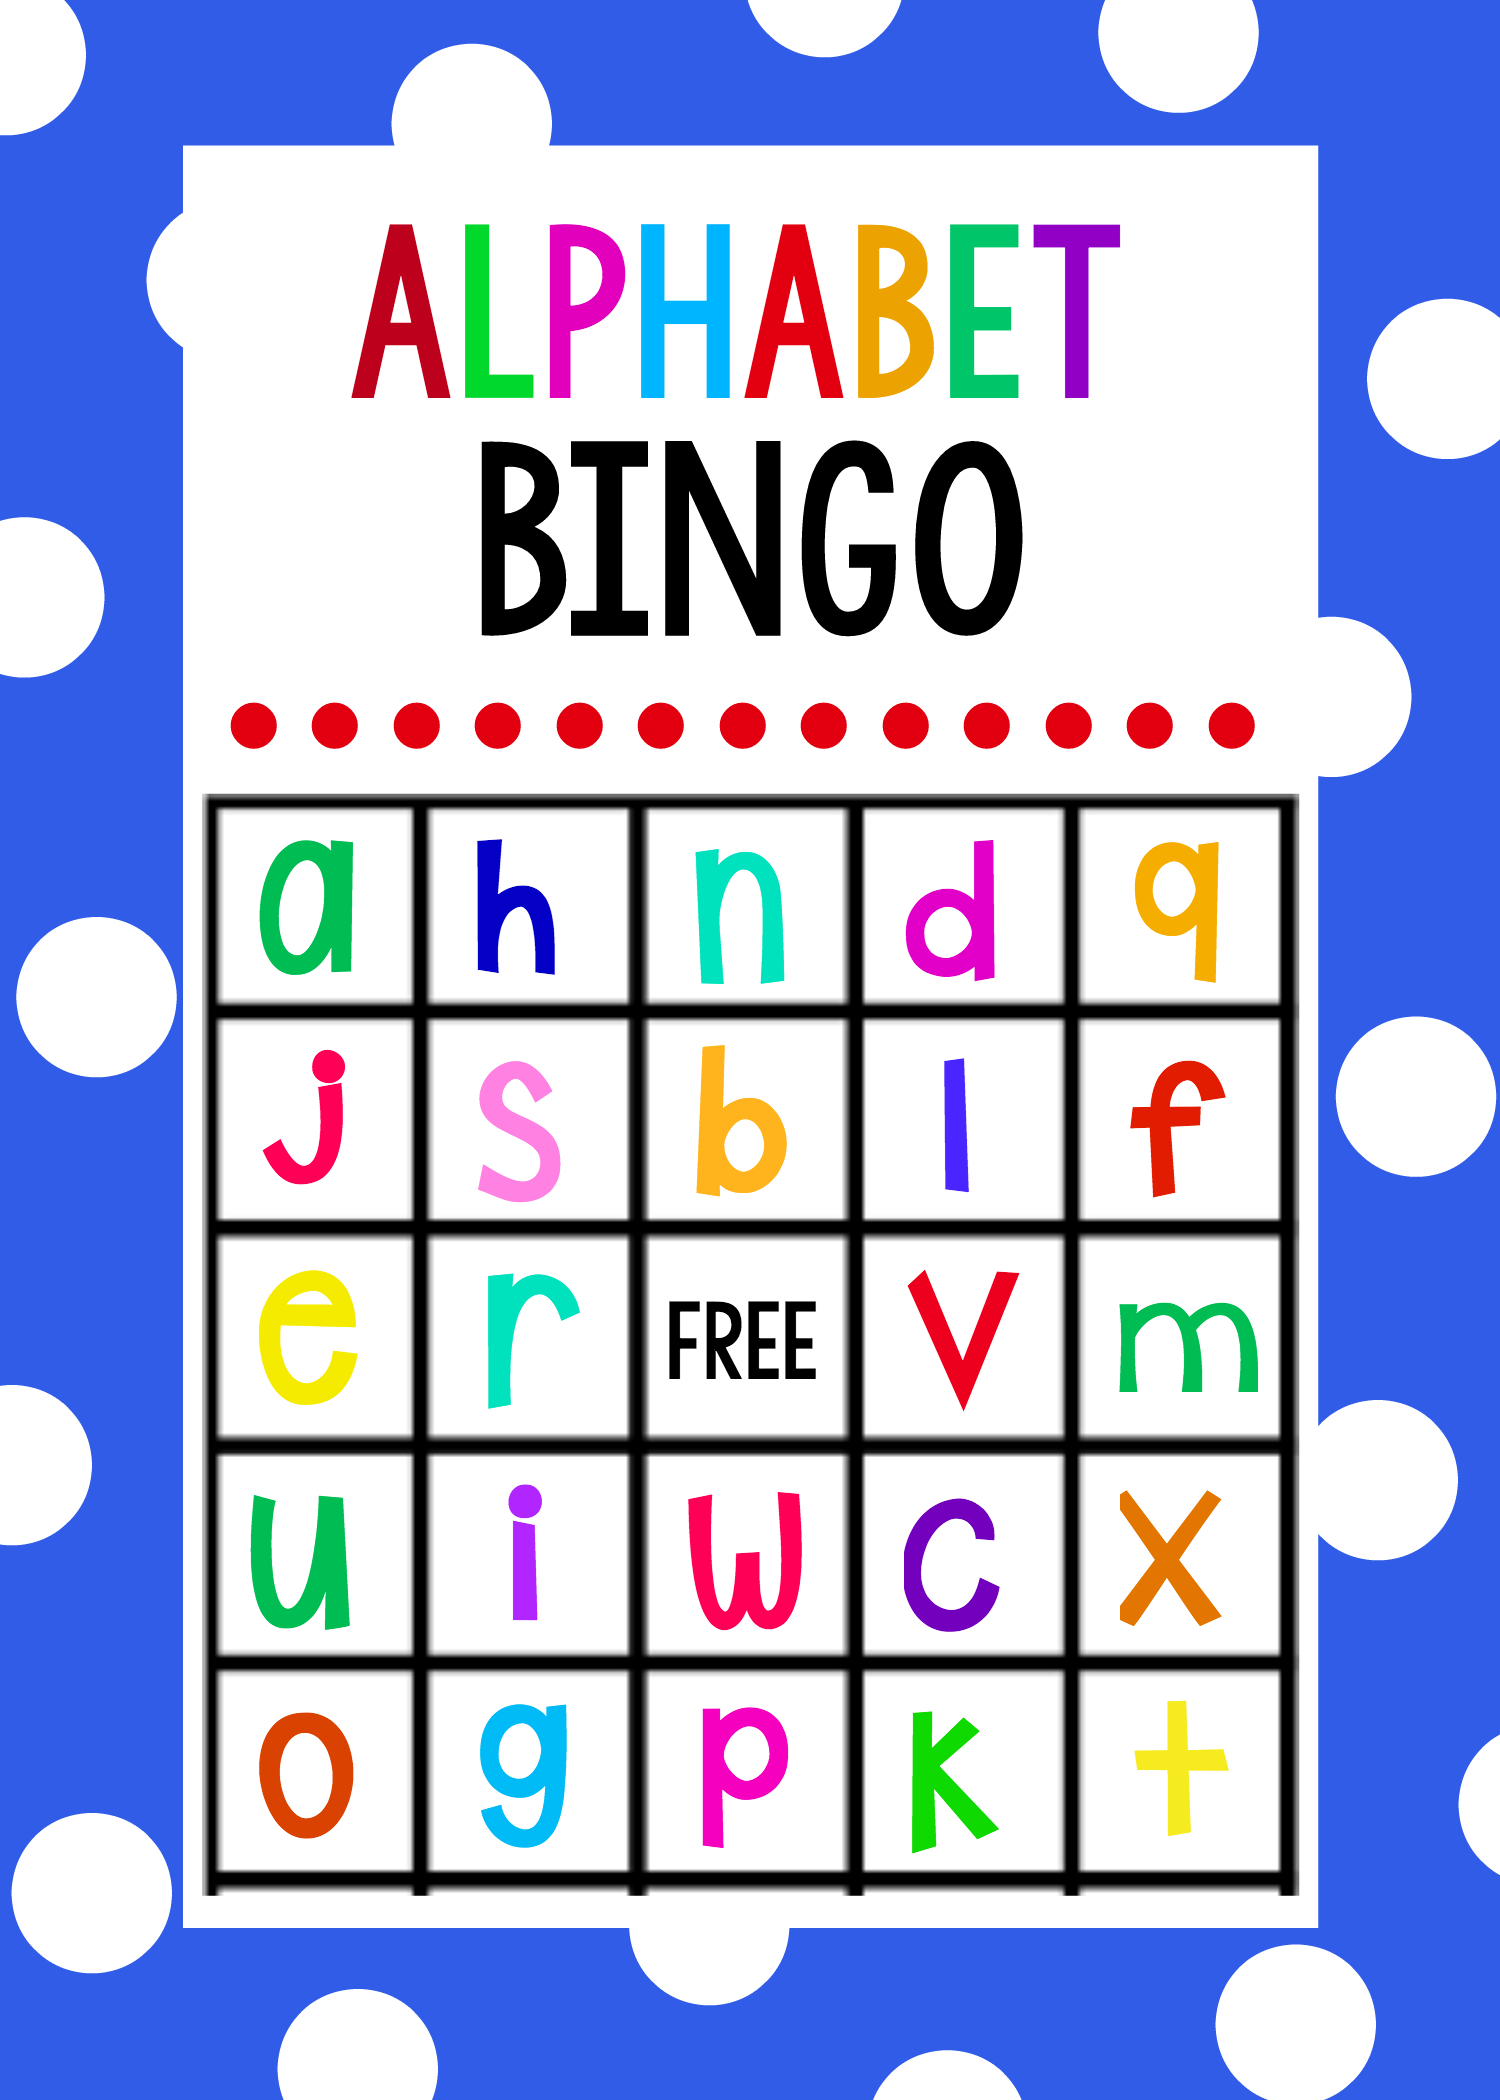 Lowercase Alphabet Bingo Game - Crazy Little Projects - Free Printable Alphabet Games